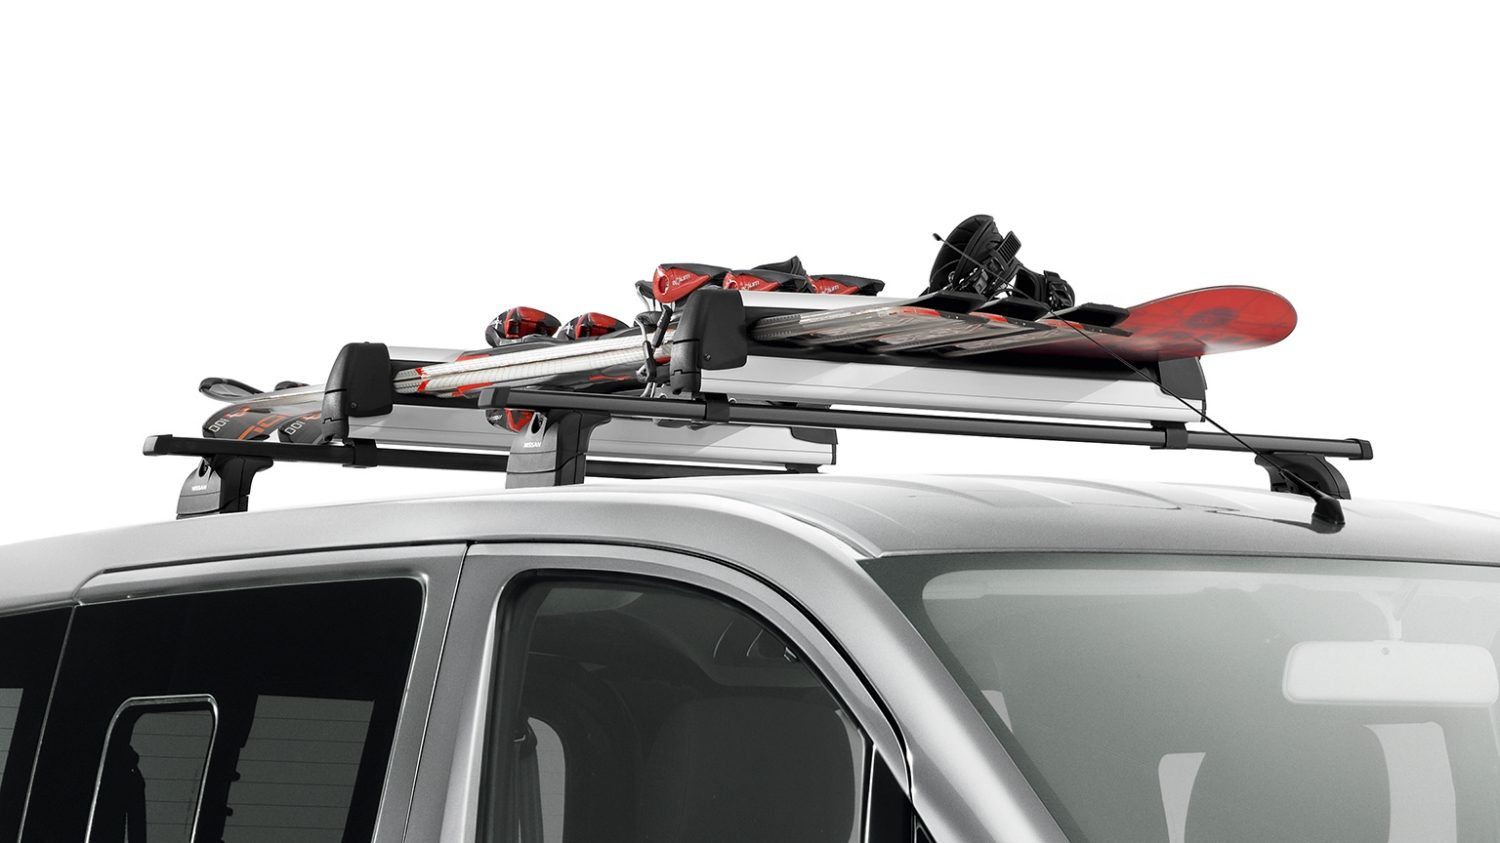 Nissan NV200 - Transportation - Ski carrier Up to 6 pairs